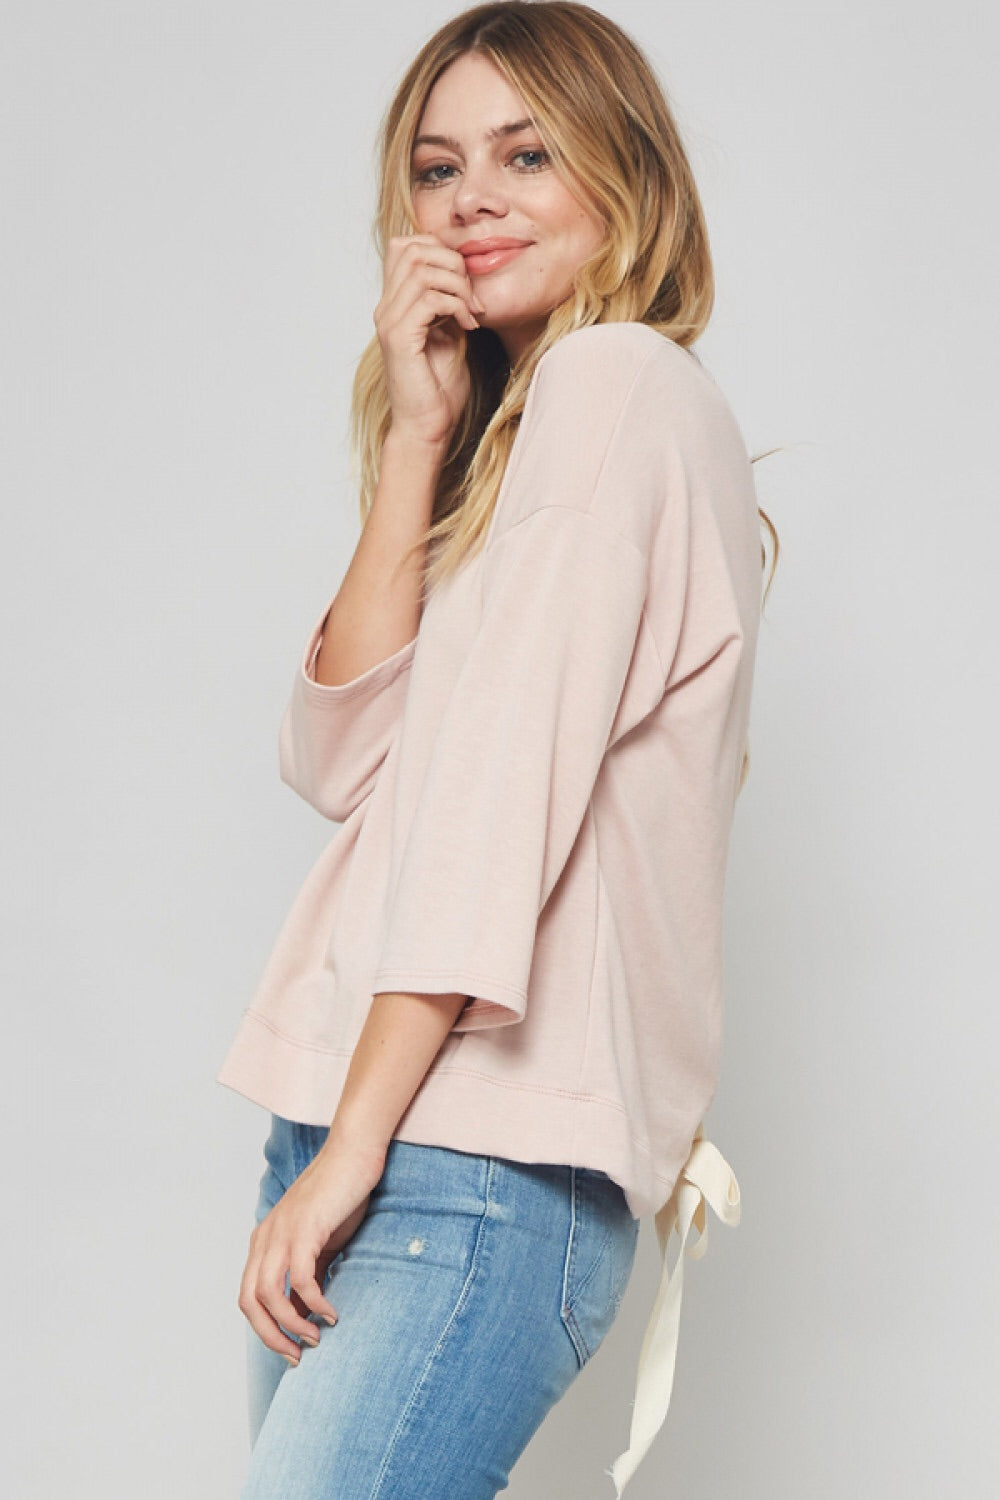 Lace Up Back Knit Top